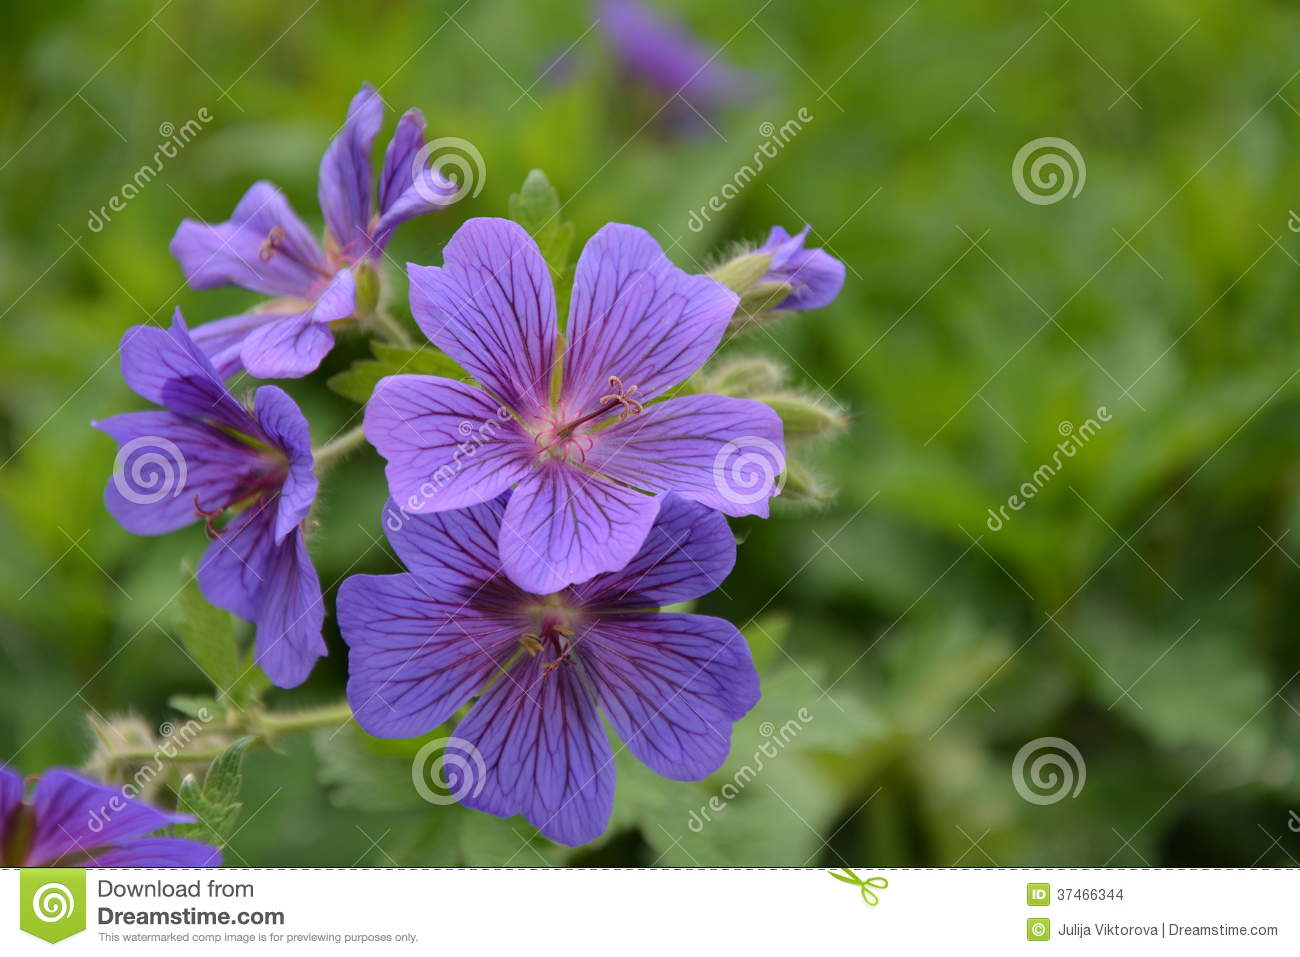 Geranium Rozanne Or Jolly Bee Stock Photo - Image of